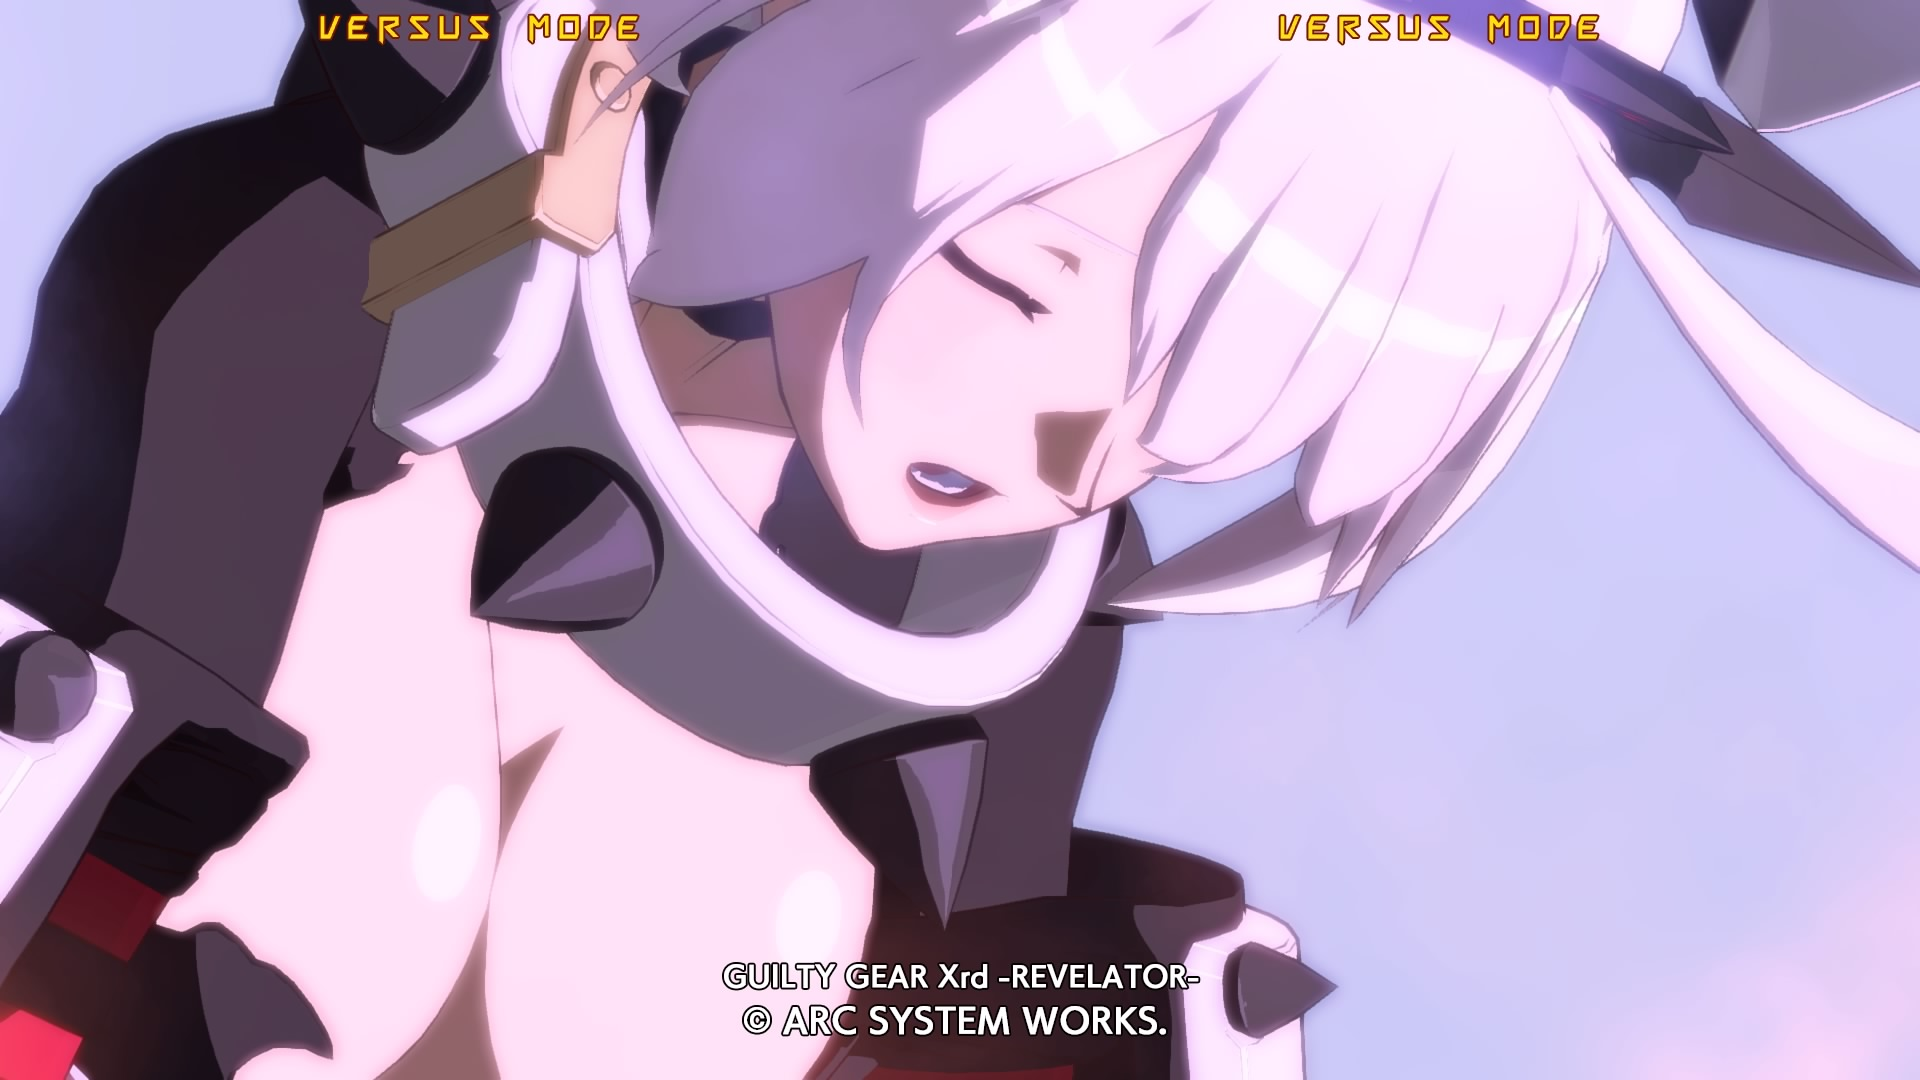 GuiltyGearXrd-Revelator PS4 Test 010